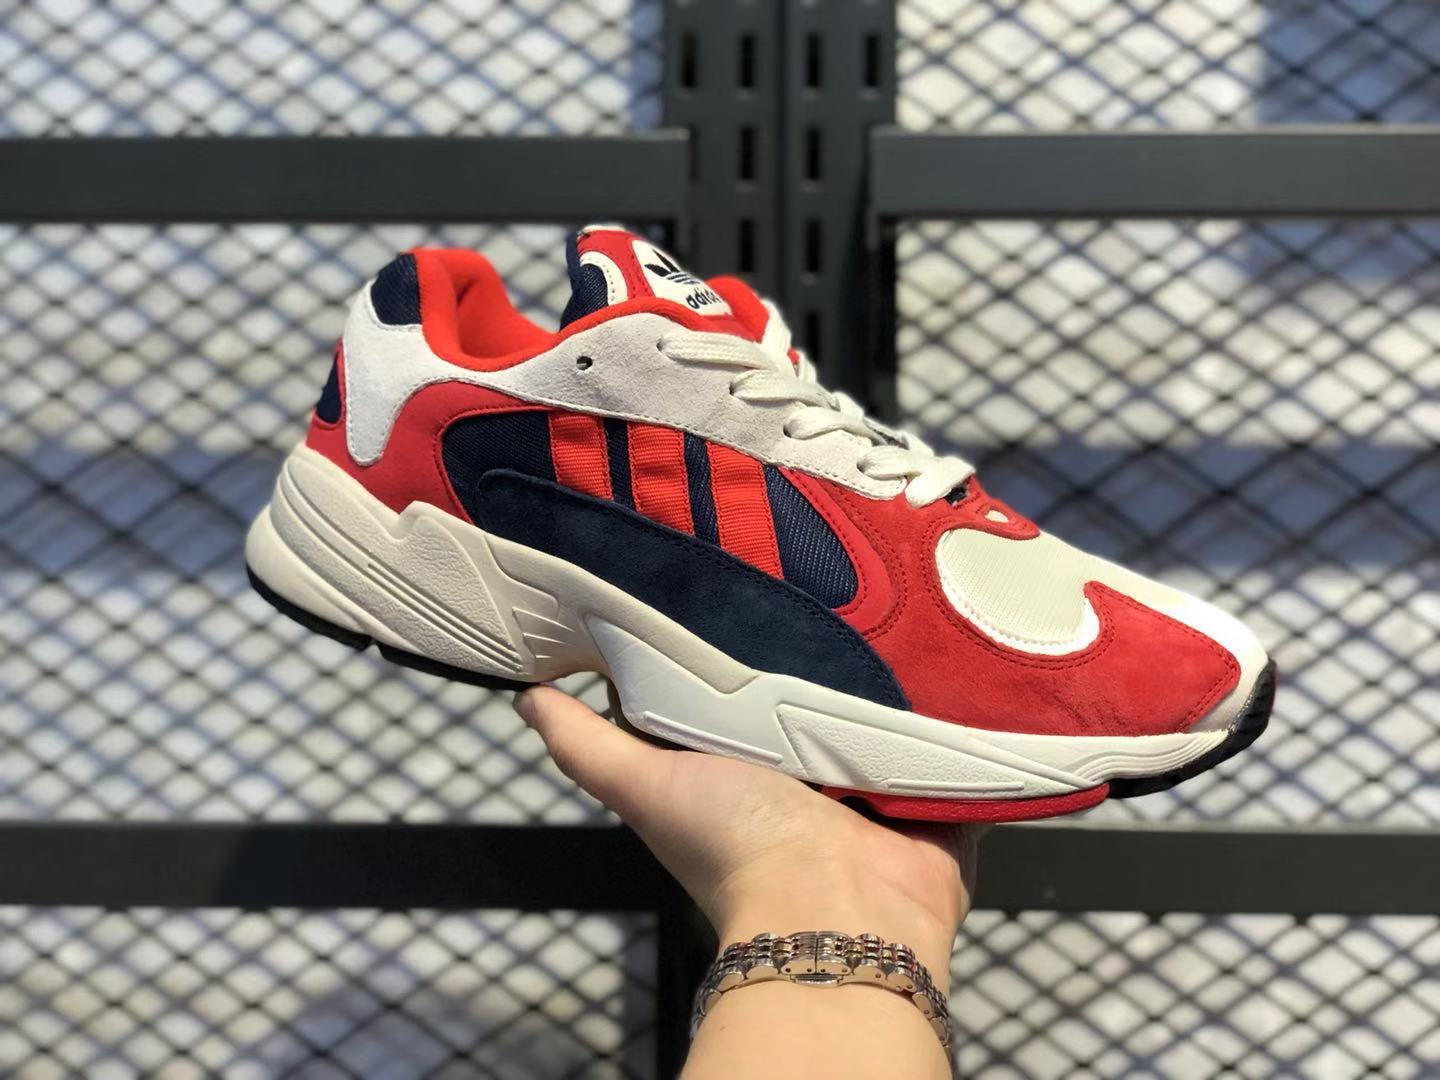 Adidas Yung-1 Chalk White/Core Black-Collegiate Navy Sneakers For Sale B37615